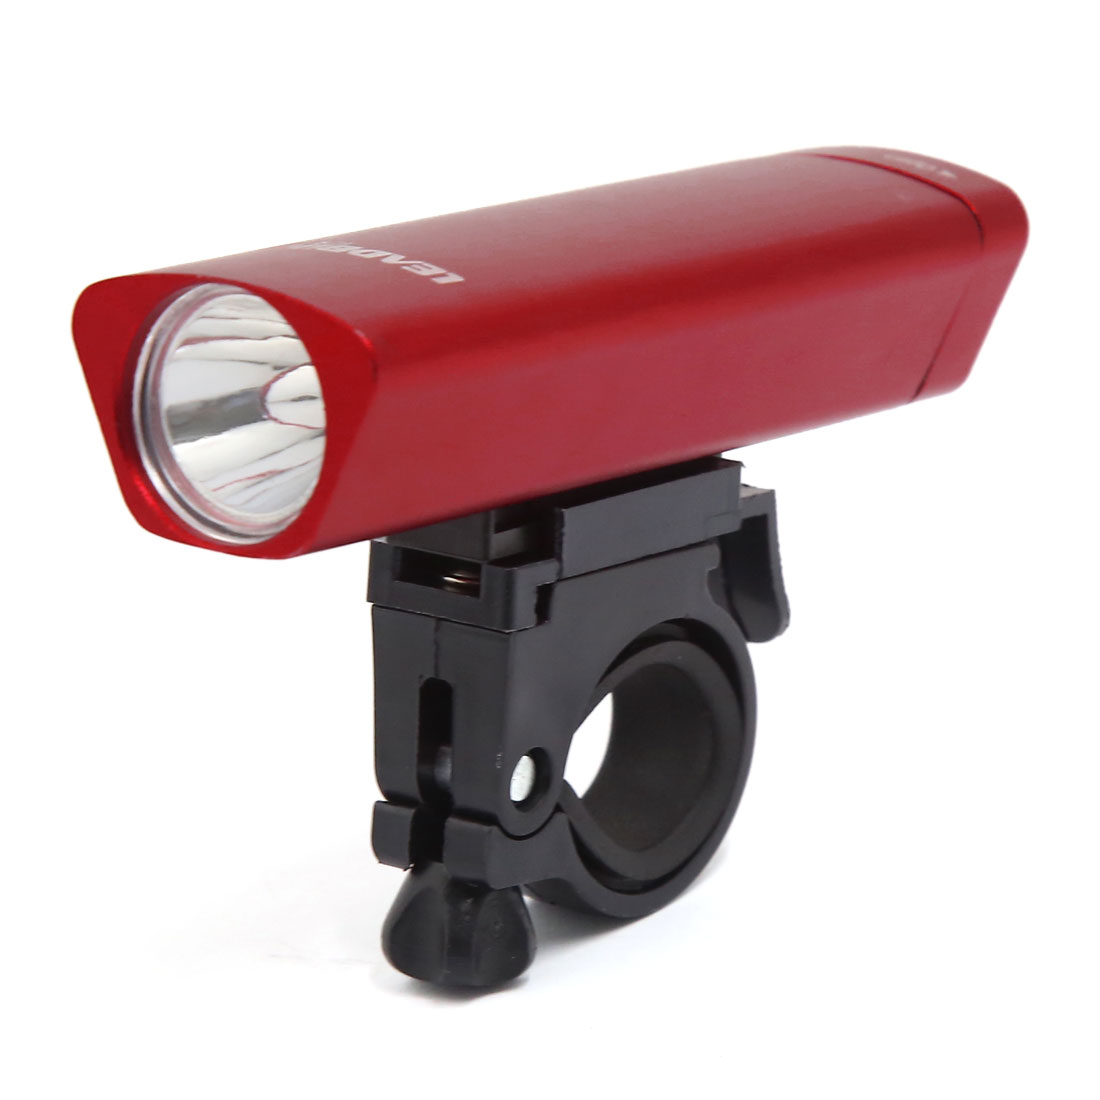 Adjustable Bicycle Bright White LED Lamp Head Light Constant Flashlight Red